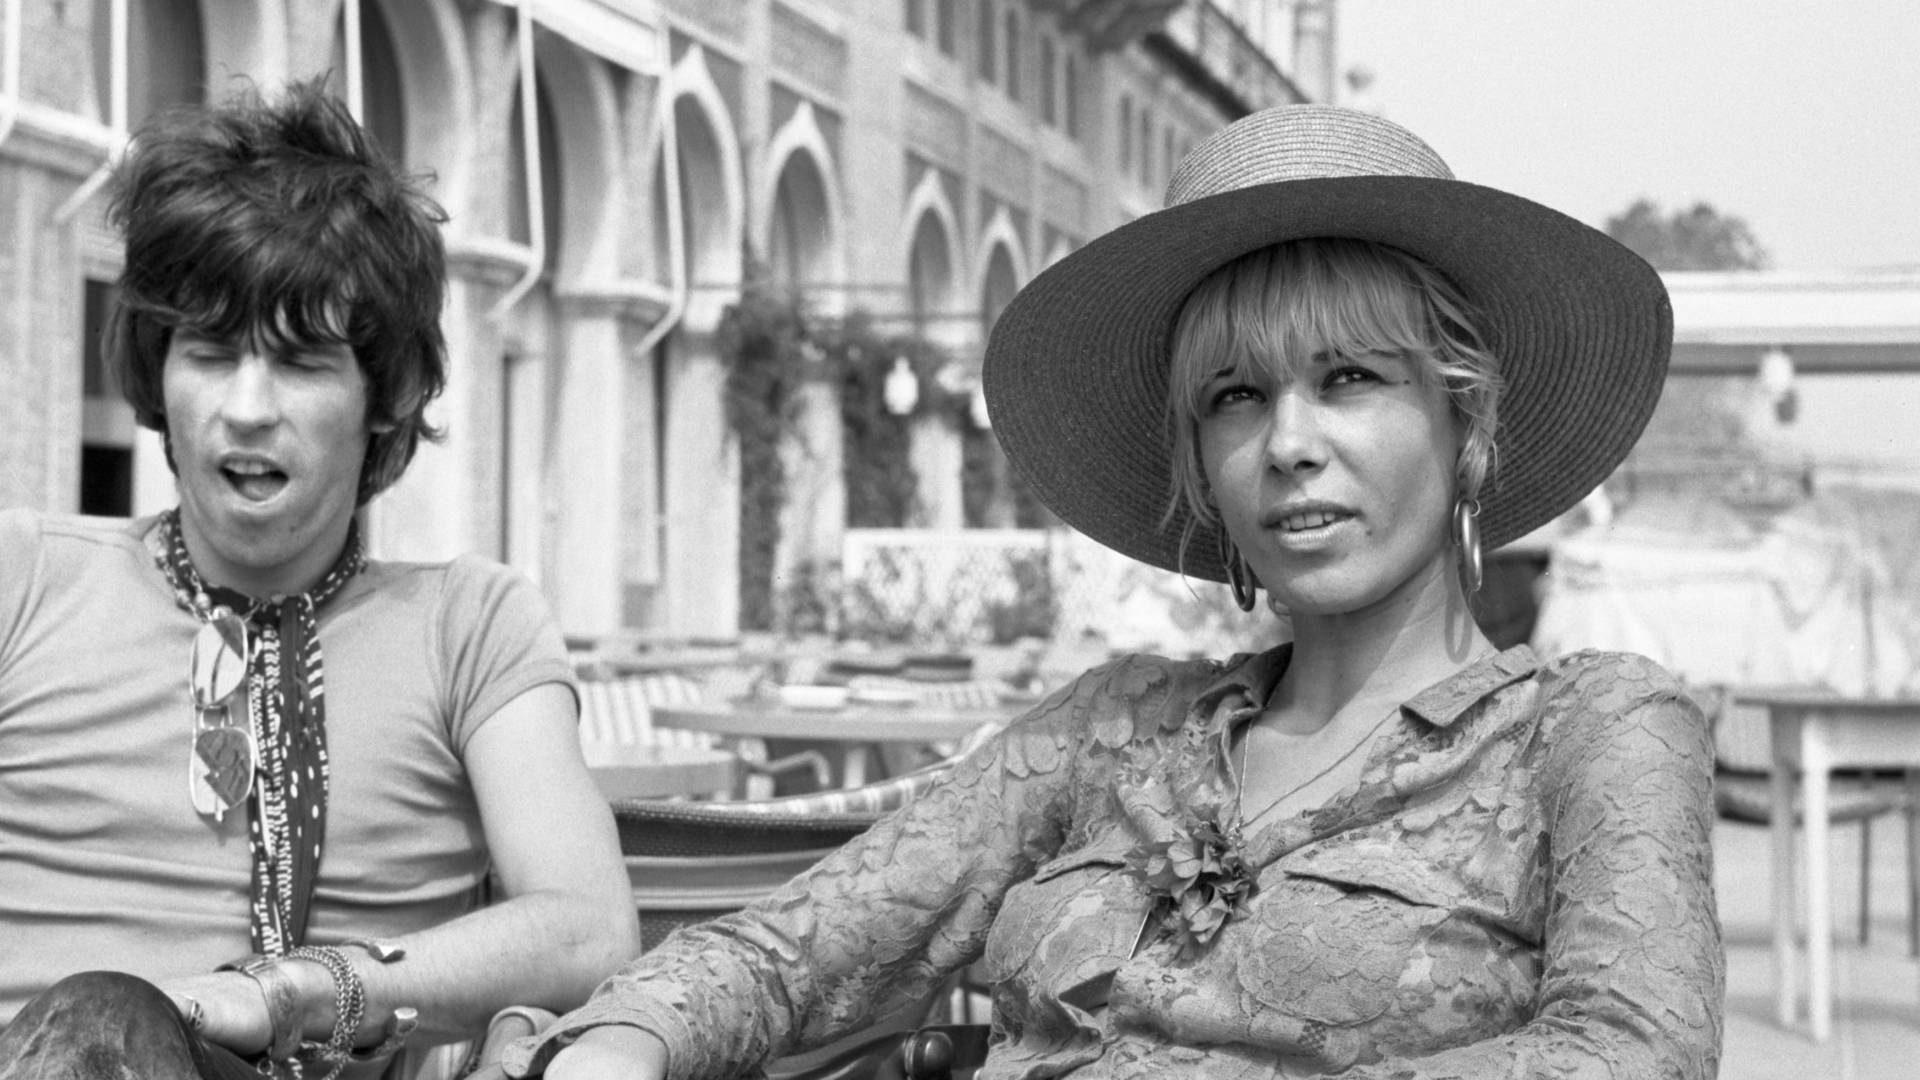 Anita Pallenberg, sitting outside the Excelsior Hotel in Venice alongside Keith Richards in 1967 Photo: Archivio Cameraphoto Epoche/Getty Images